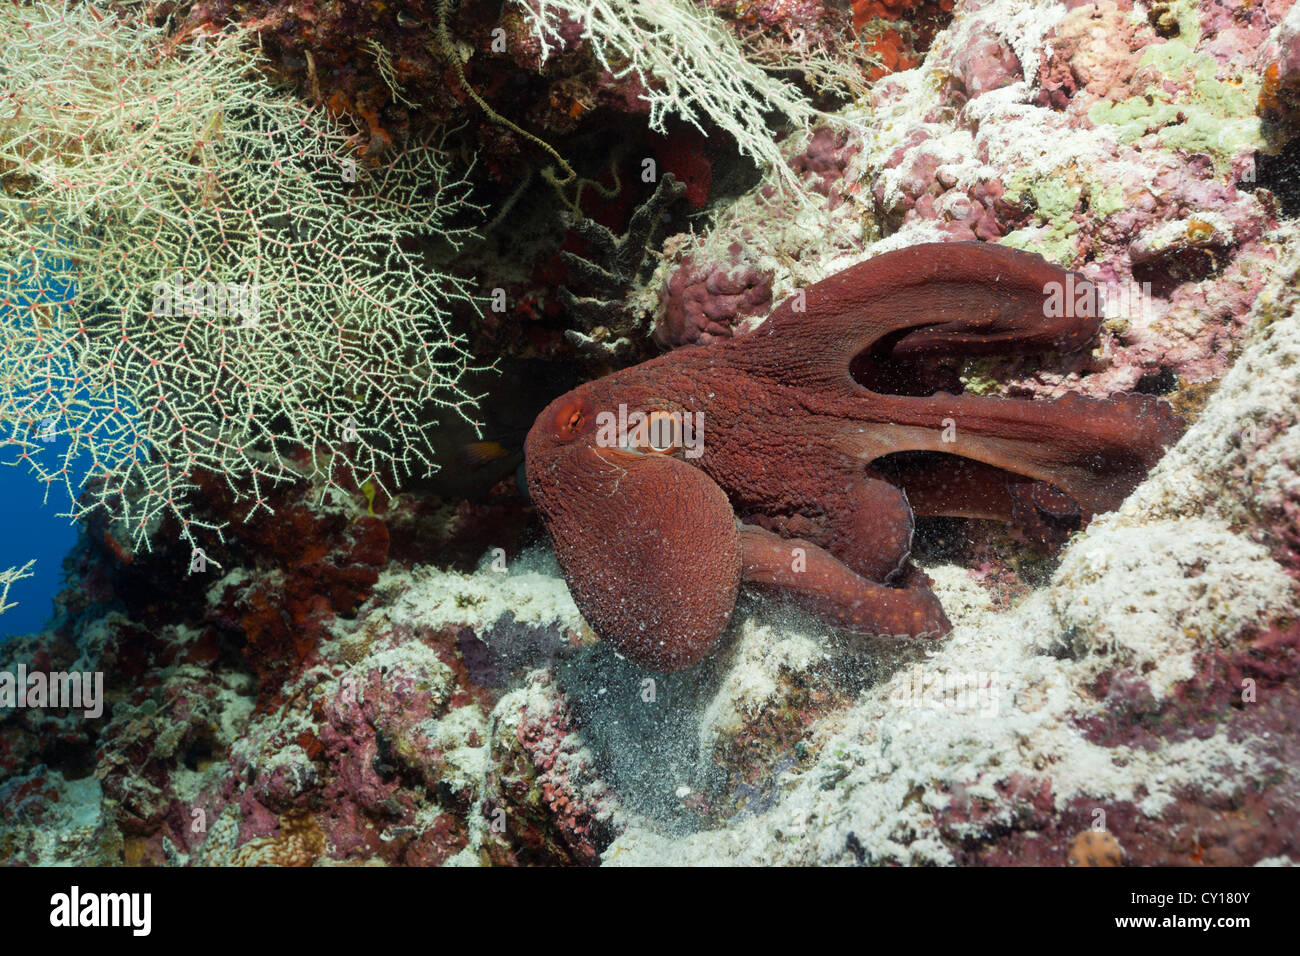 Octopus search for Food, Thaa Atoll, Maldives - Stock Image